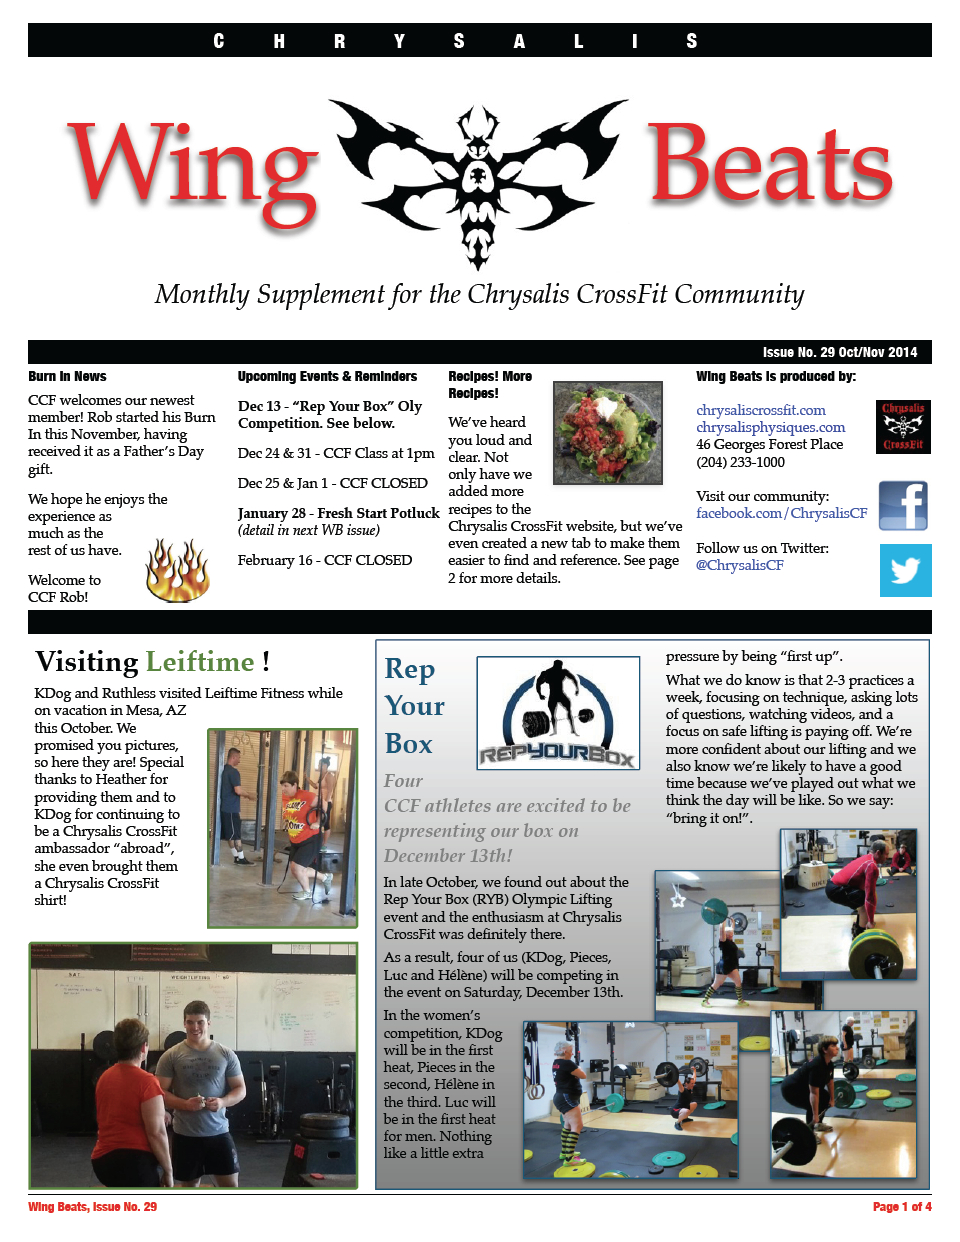 WingBeats Issue #29 - OctNov 2014